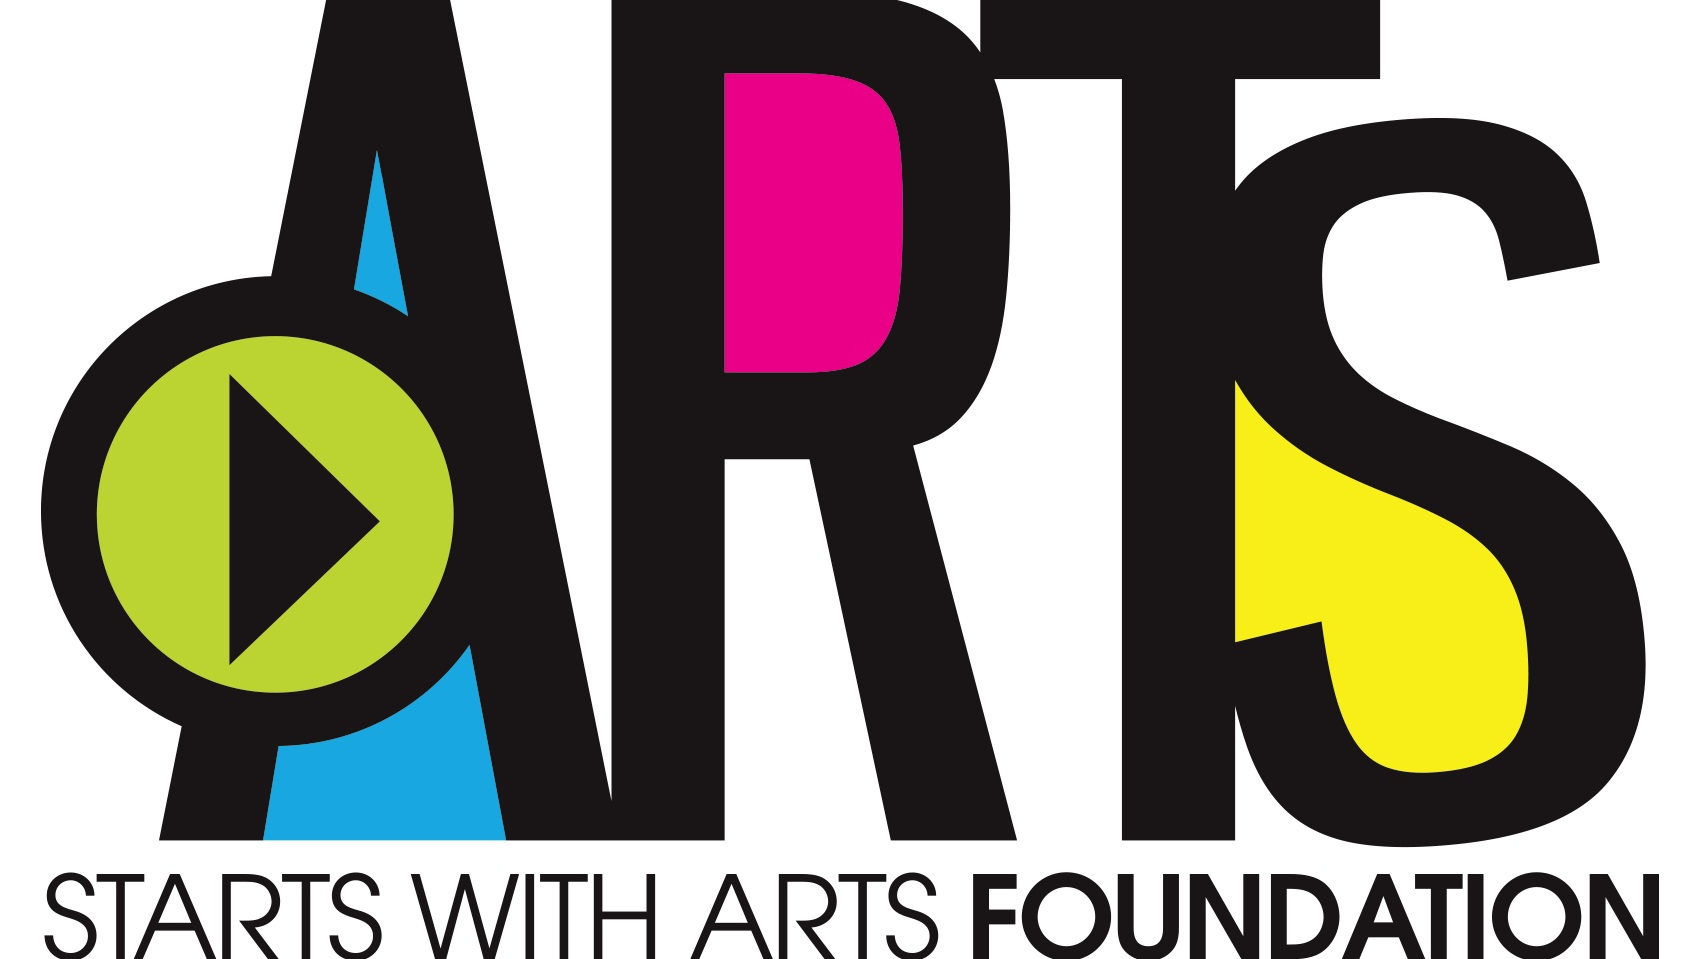 STARTS WITH ARTS_LOGO_CMYK.png